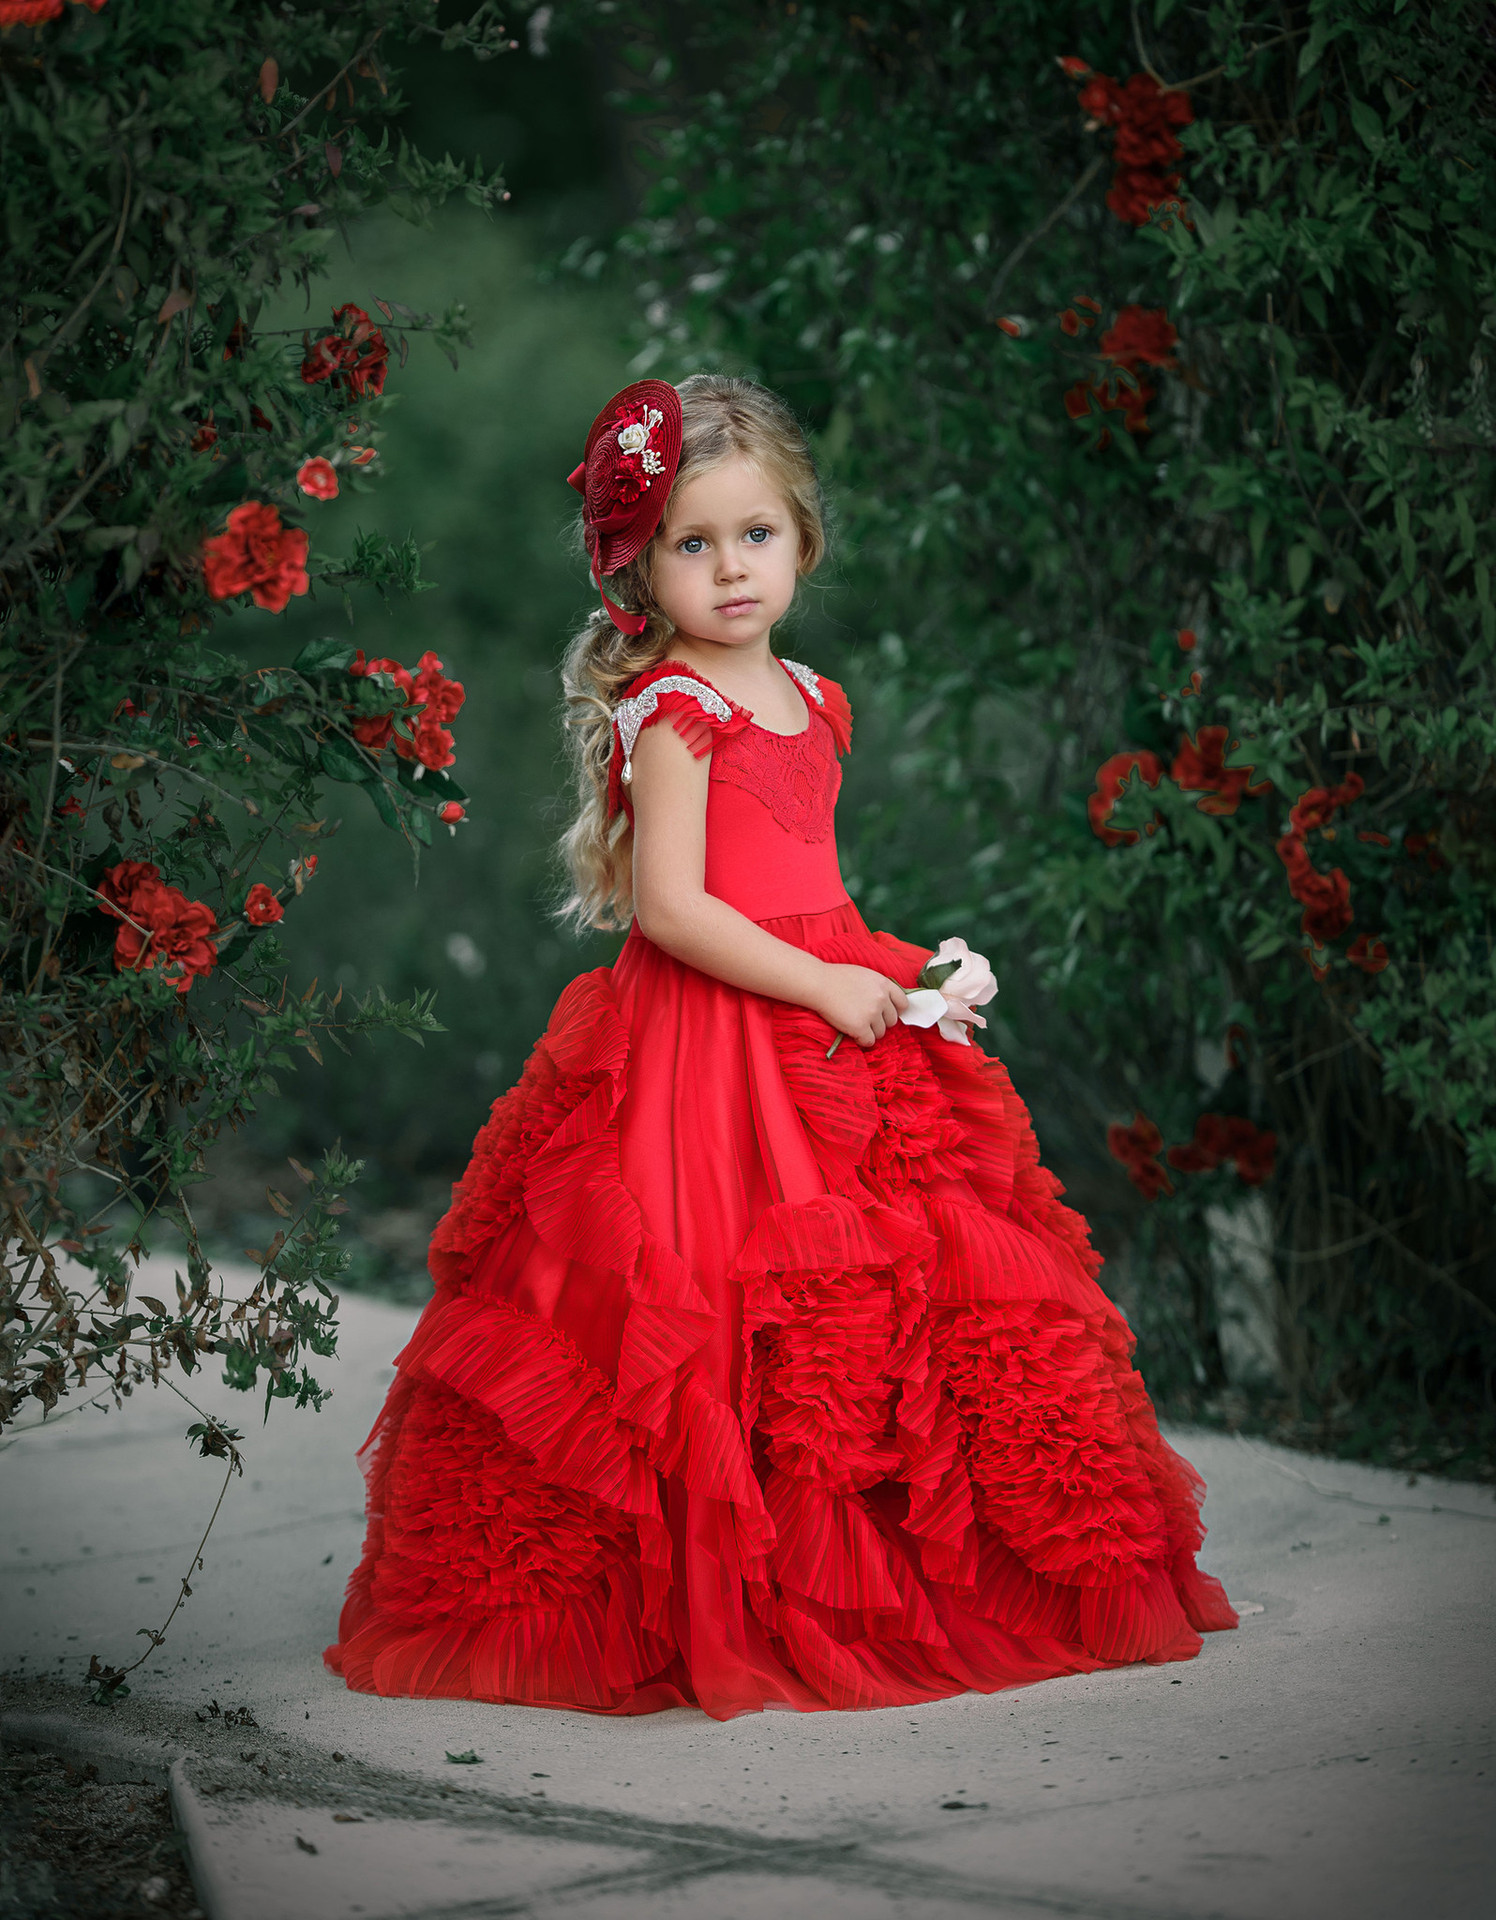 New Children Fashion Flower Red Dress Birthday Party Piano Dance Show Graduation Party Girls Wedding Dress Tutu Mesh Dress dance legend red show 05 цвет 05